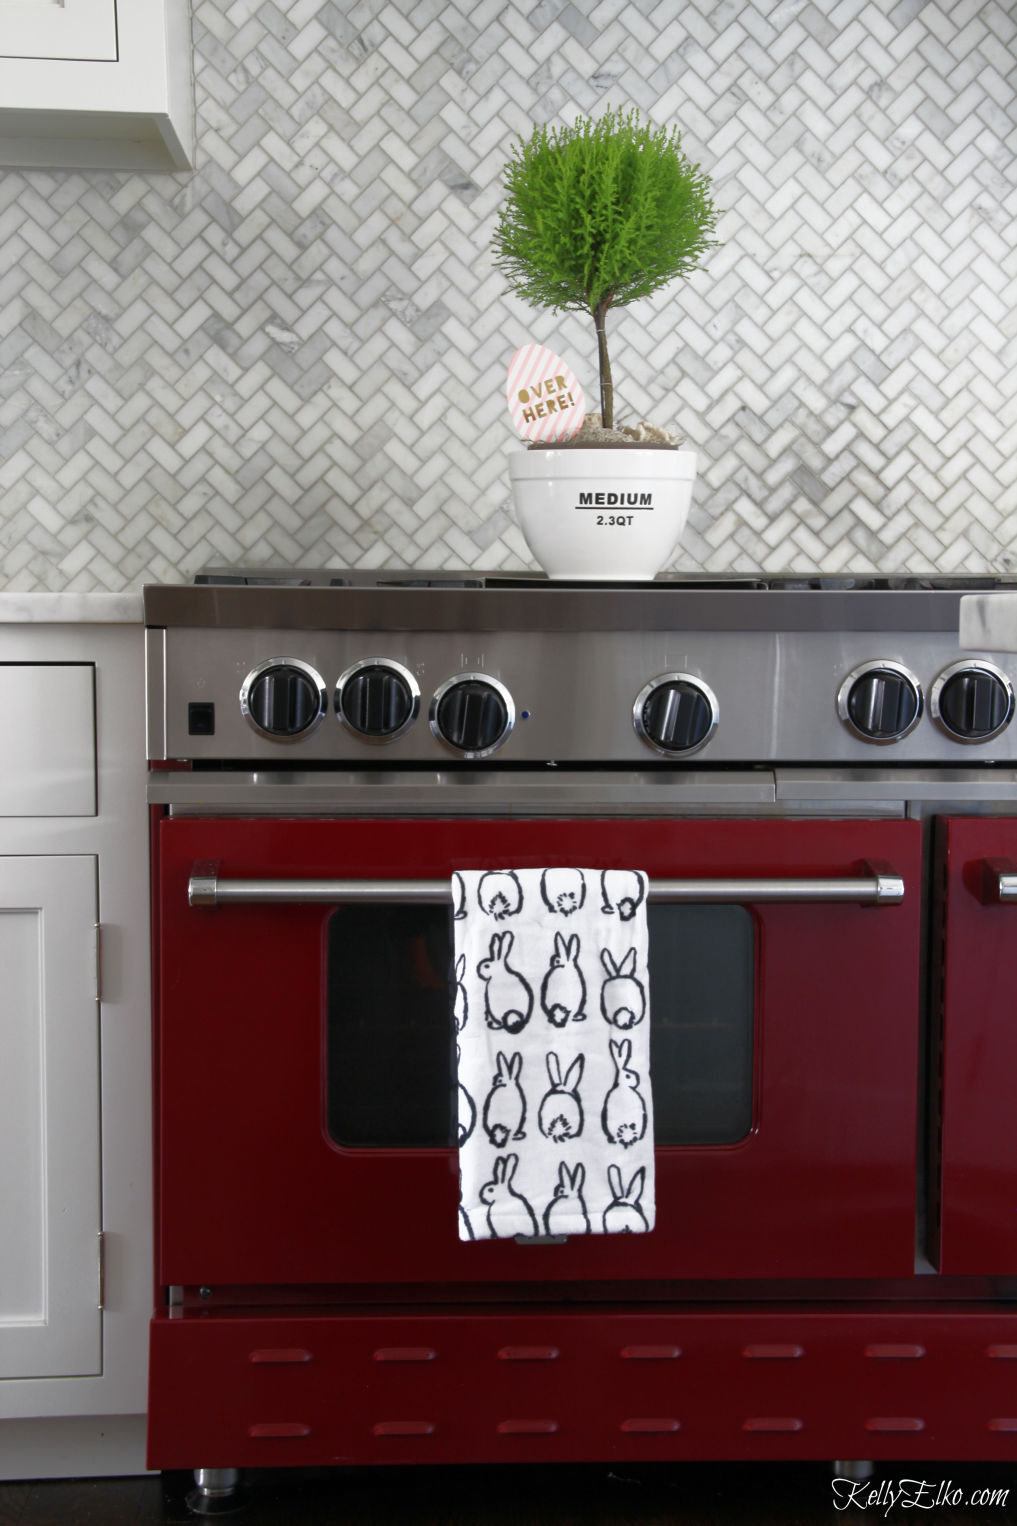 Love this red stove and the marble herringbone tile backsplash kellyelko.com #kitchen #stove #kitchenappliances #appliances #red #whitekitchen #kitchendecor